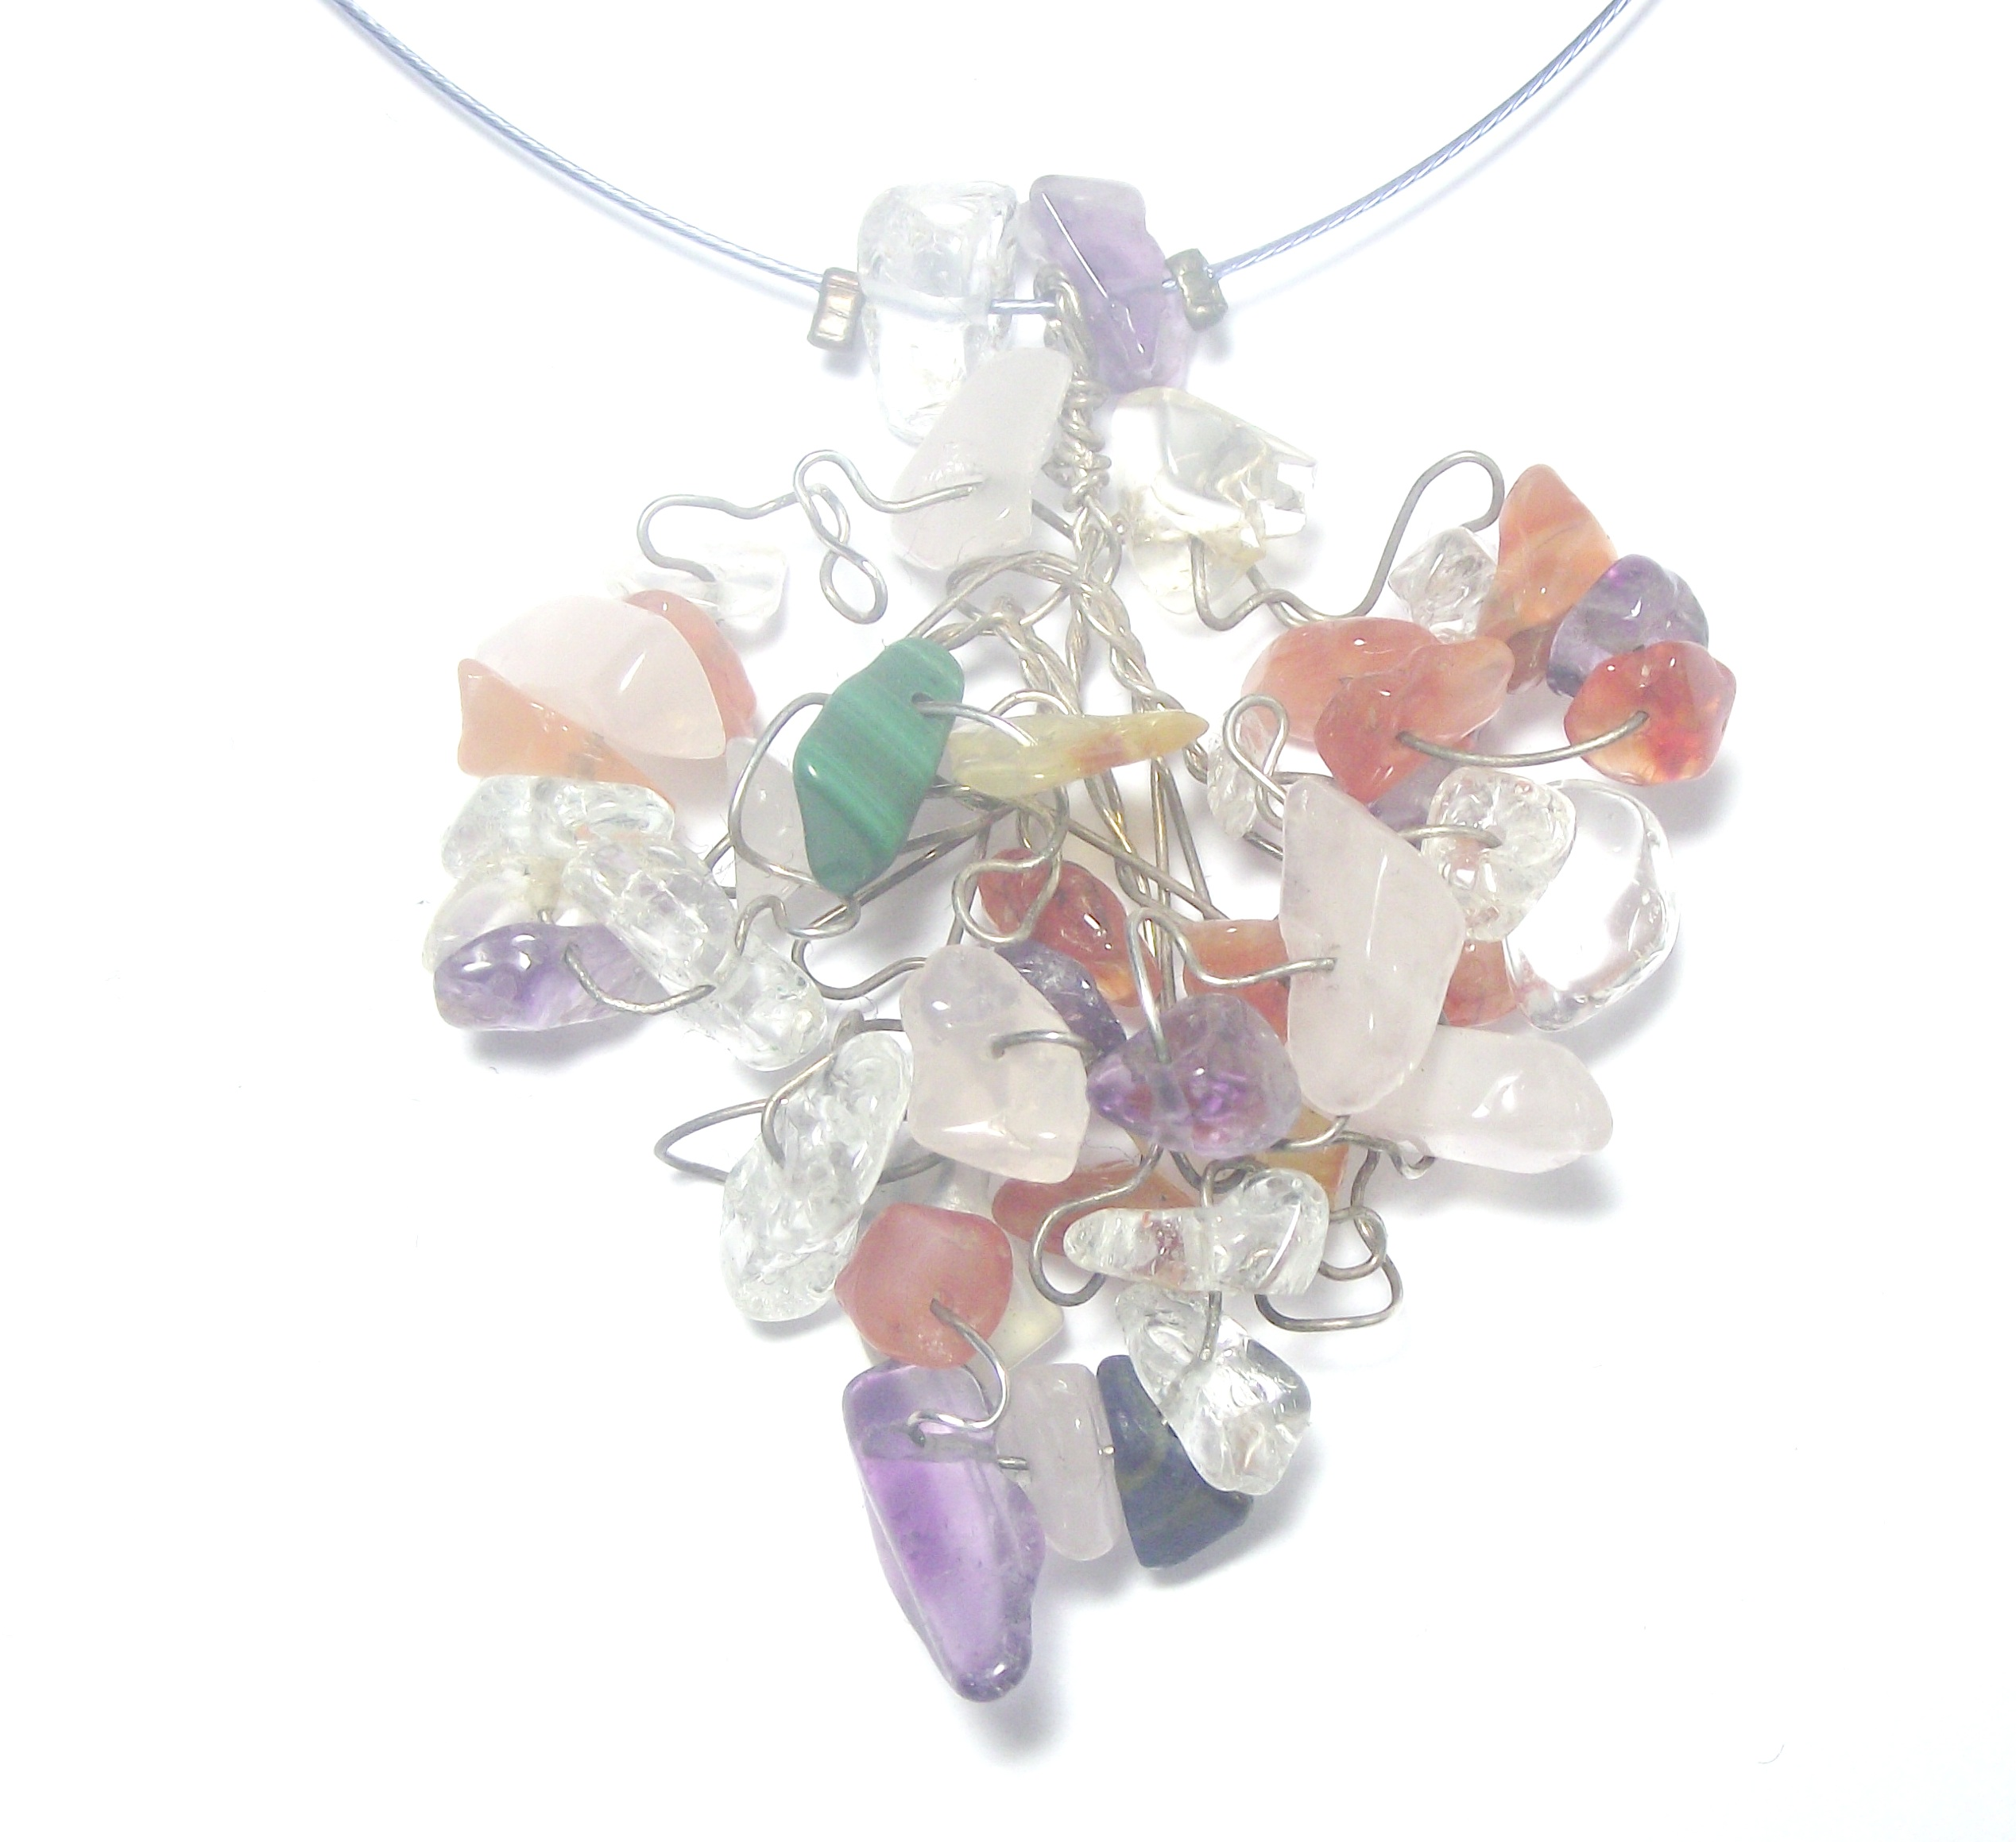 swarovski drop silver necklace gemstone made embellished colour zoom jon richard jewellery created multi necklaces y with crystals